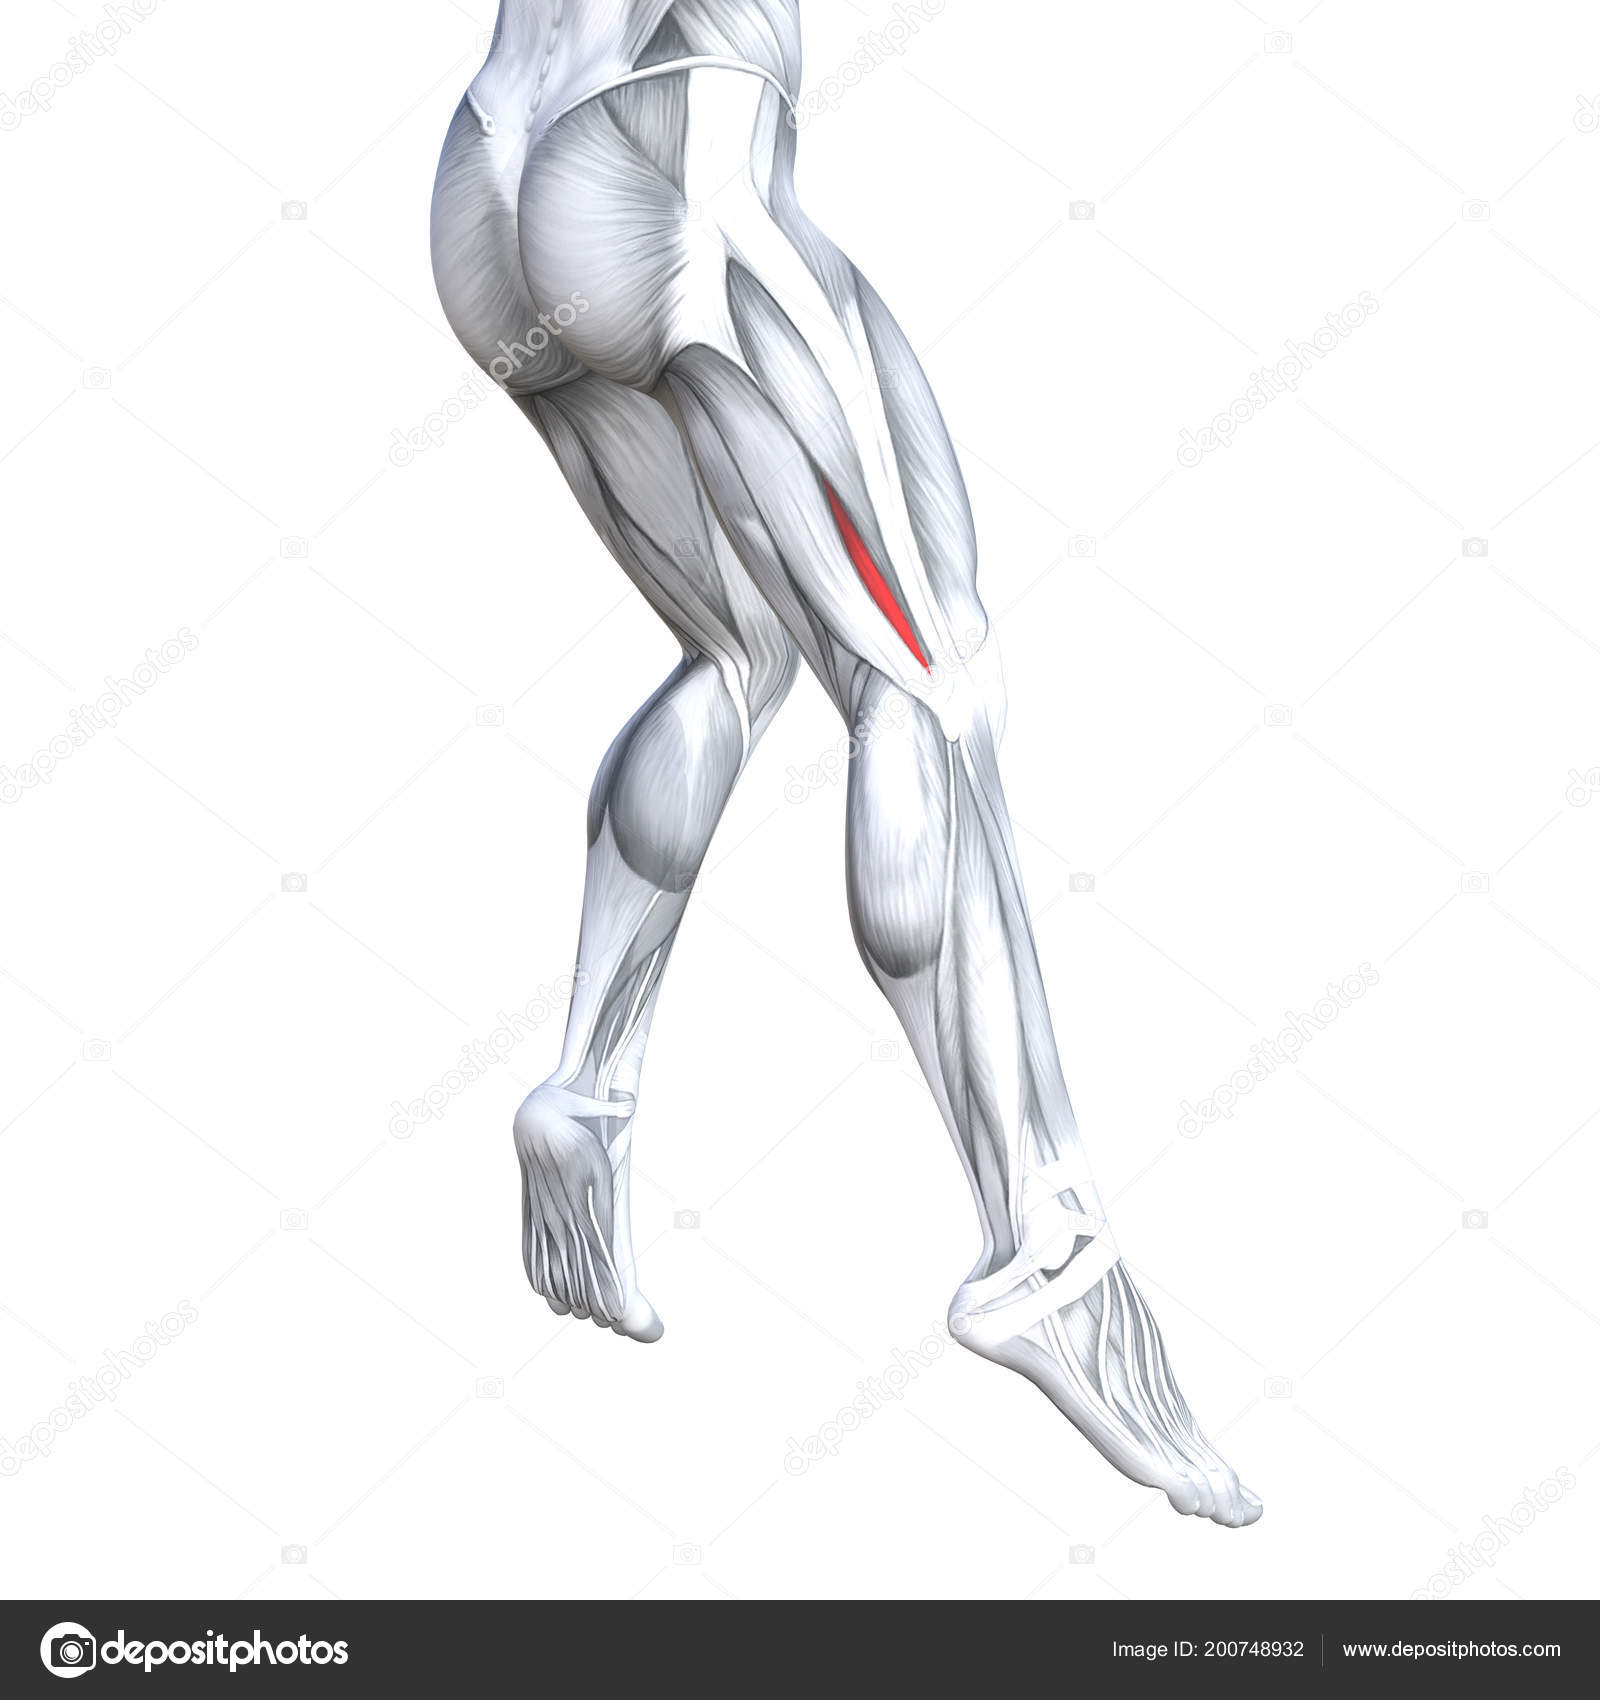 Concept Conceptual Illustration Fit Strong Back Upper Legs Human